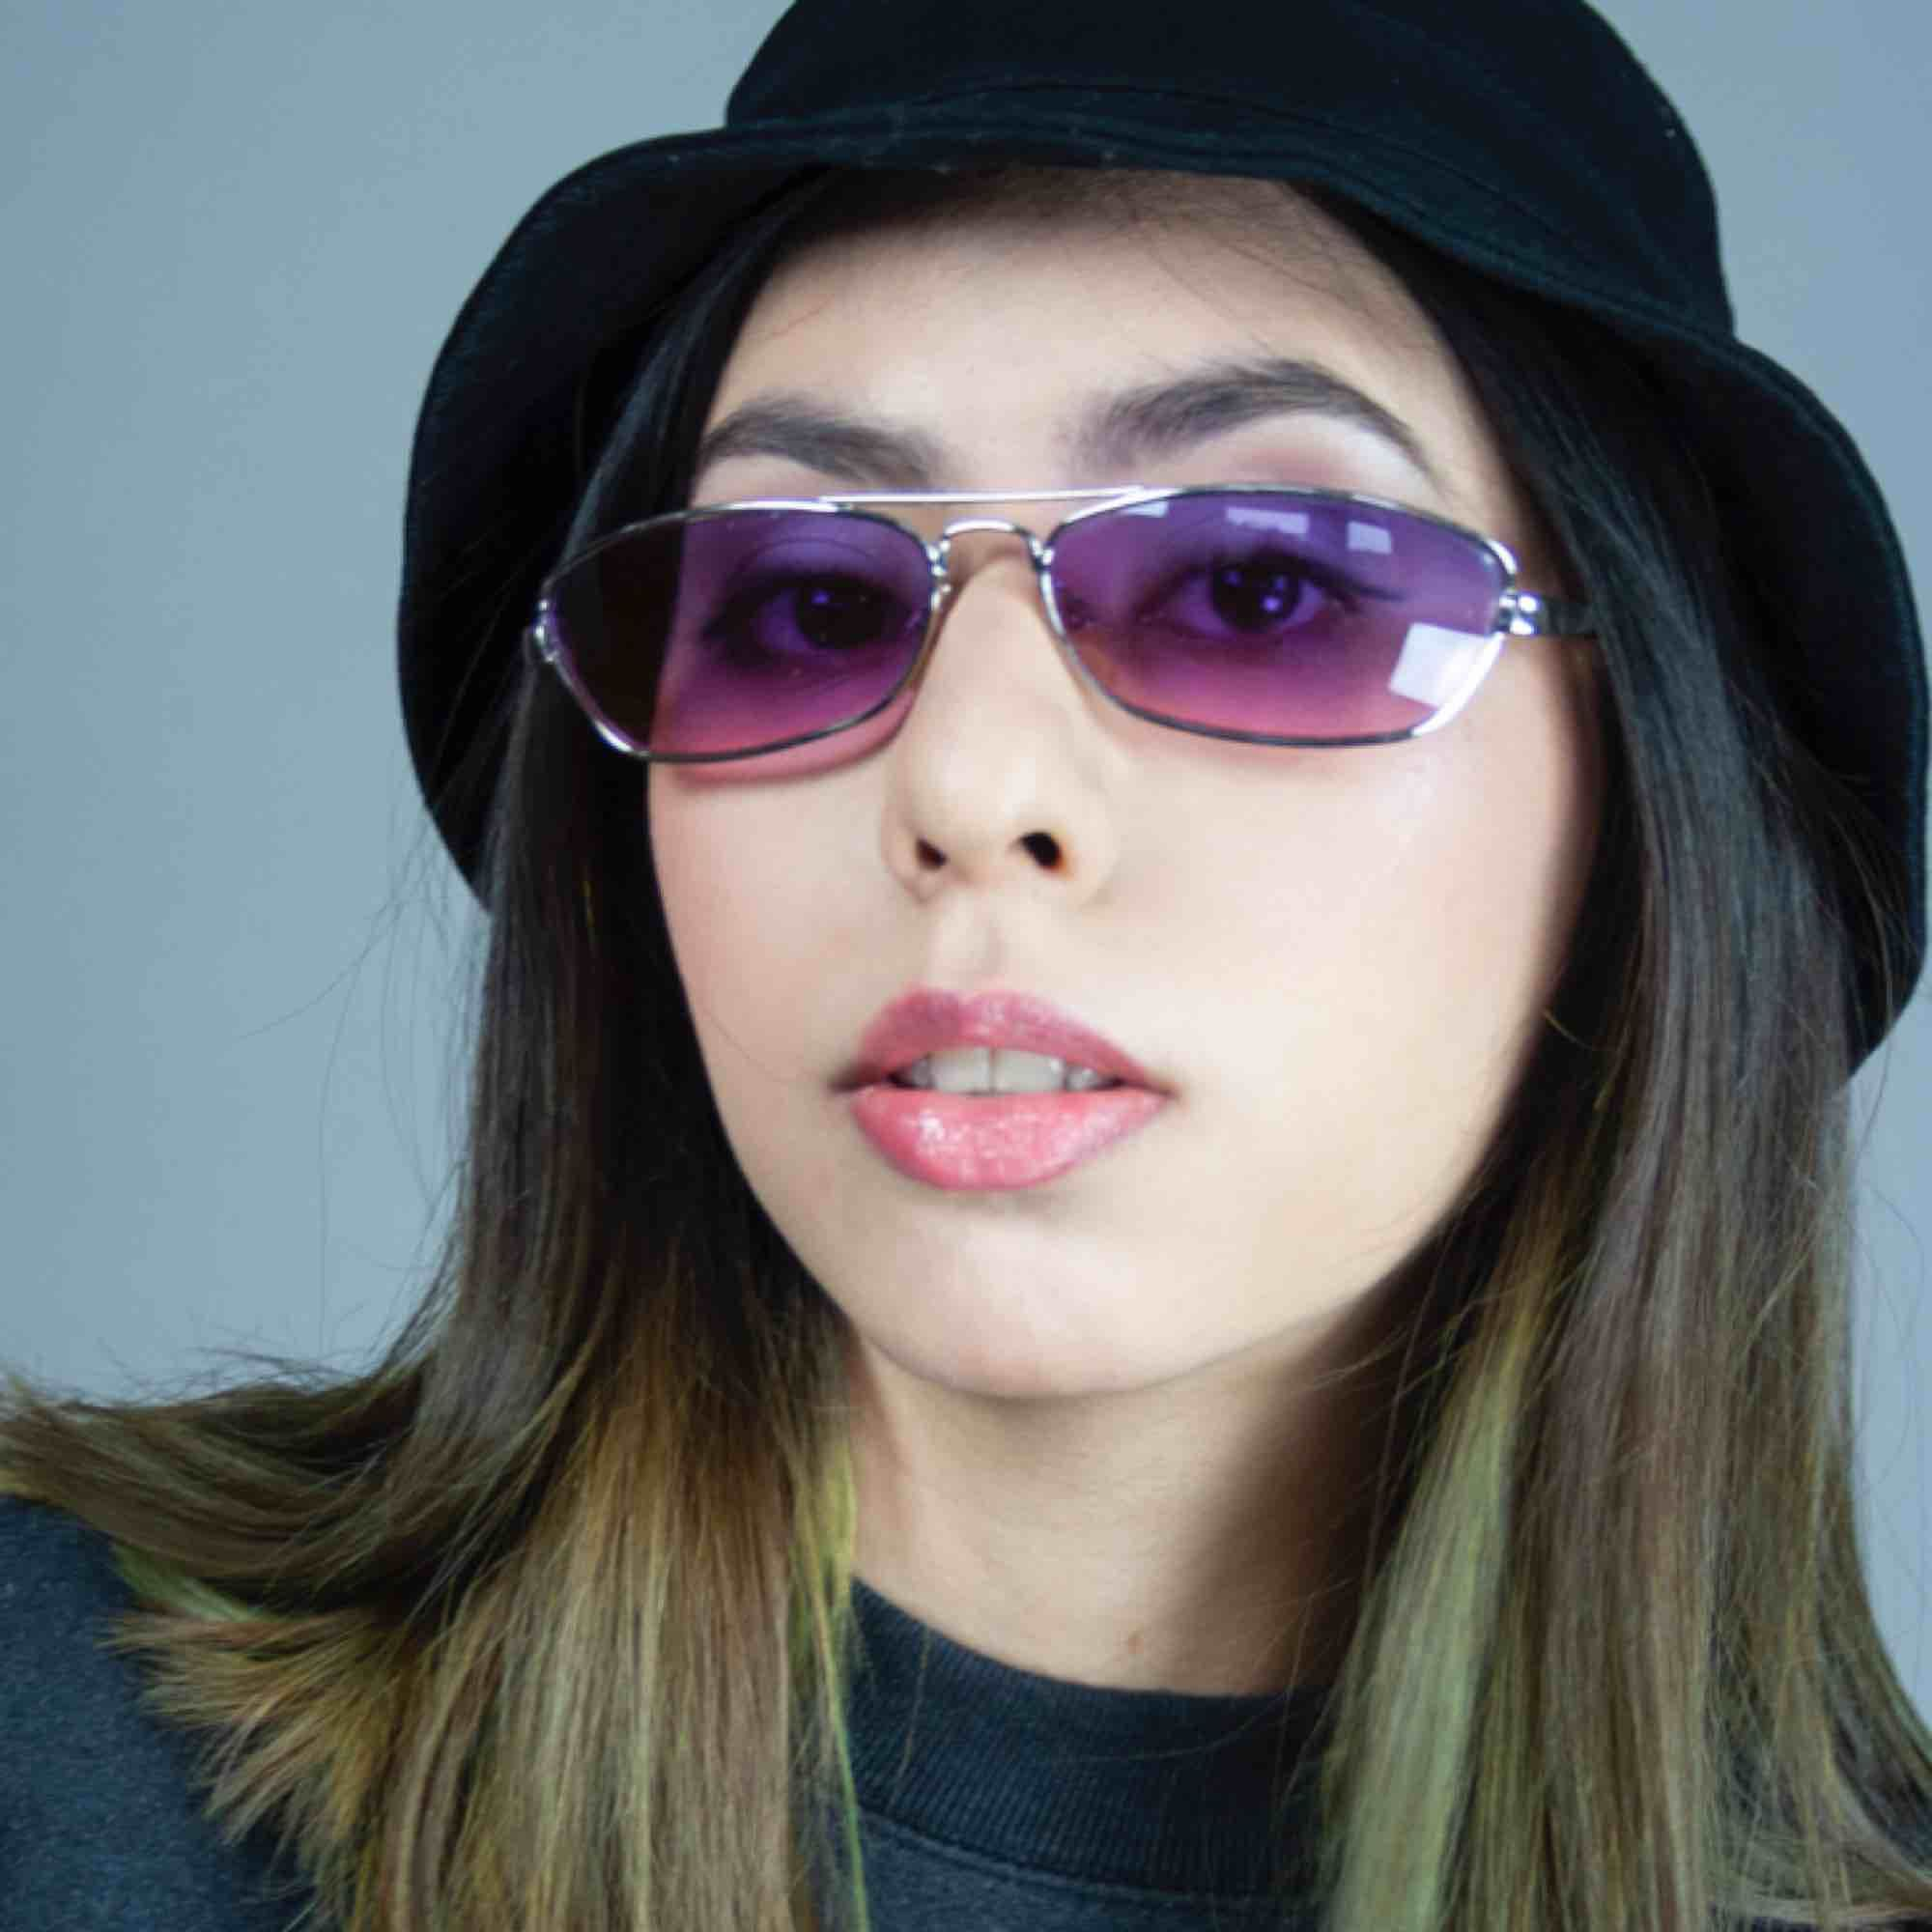 00s Y2K FUNK slim oval rectangular sunglasses shades in purple  SIZE One size Model: 165/XS Measurements: Frame: 14.5 cm/ 5.7